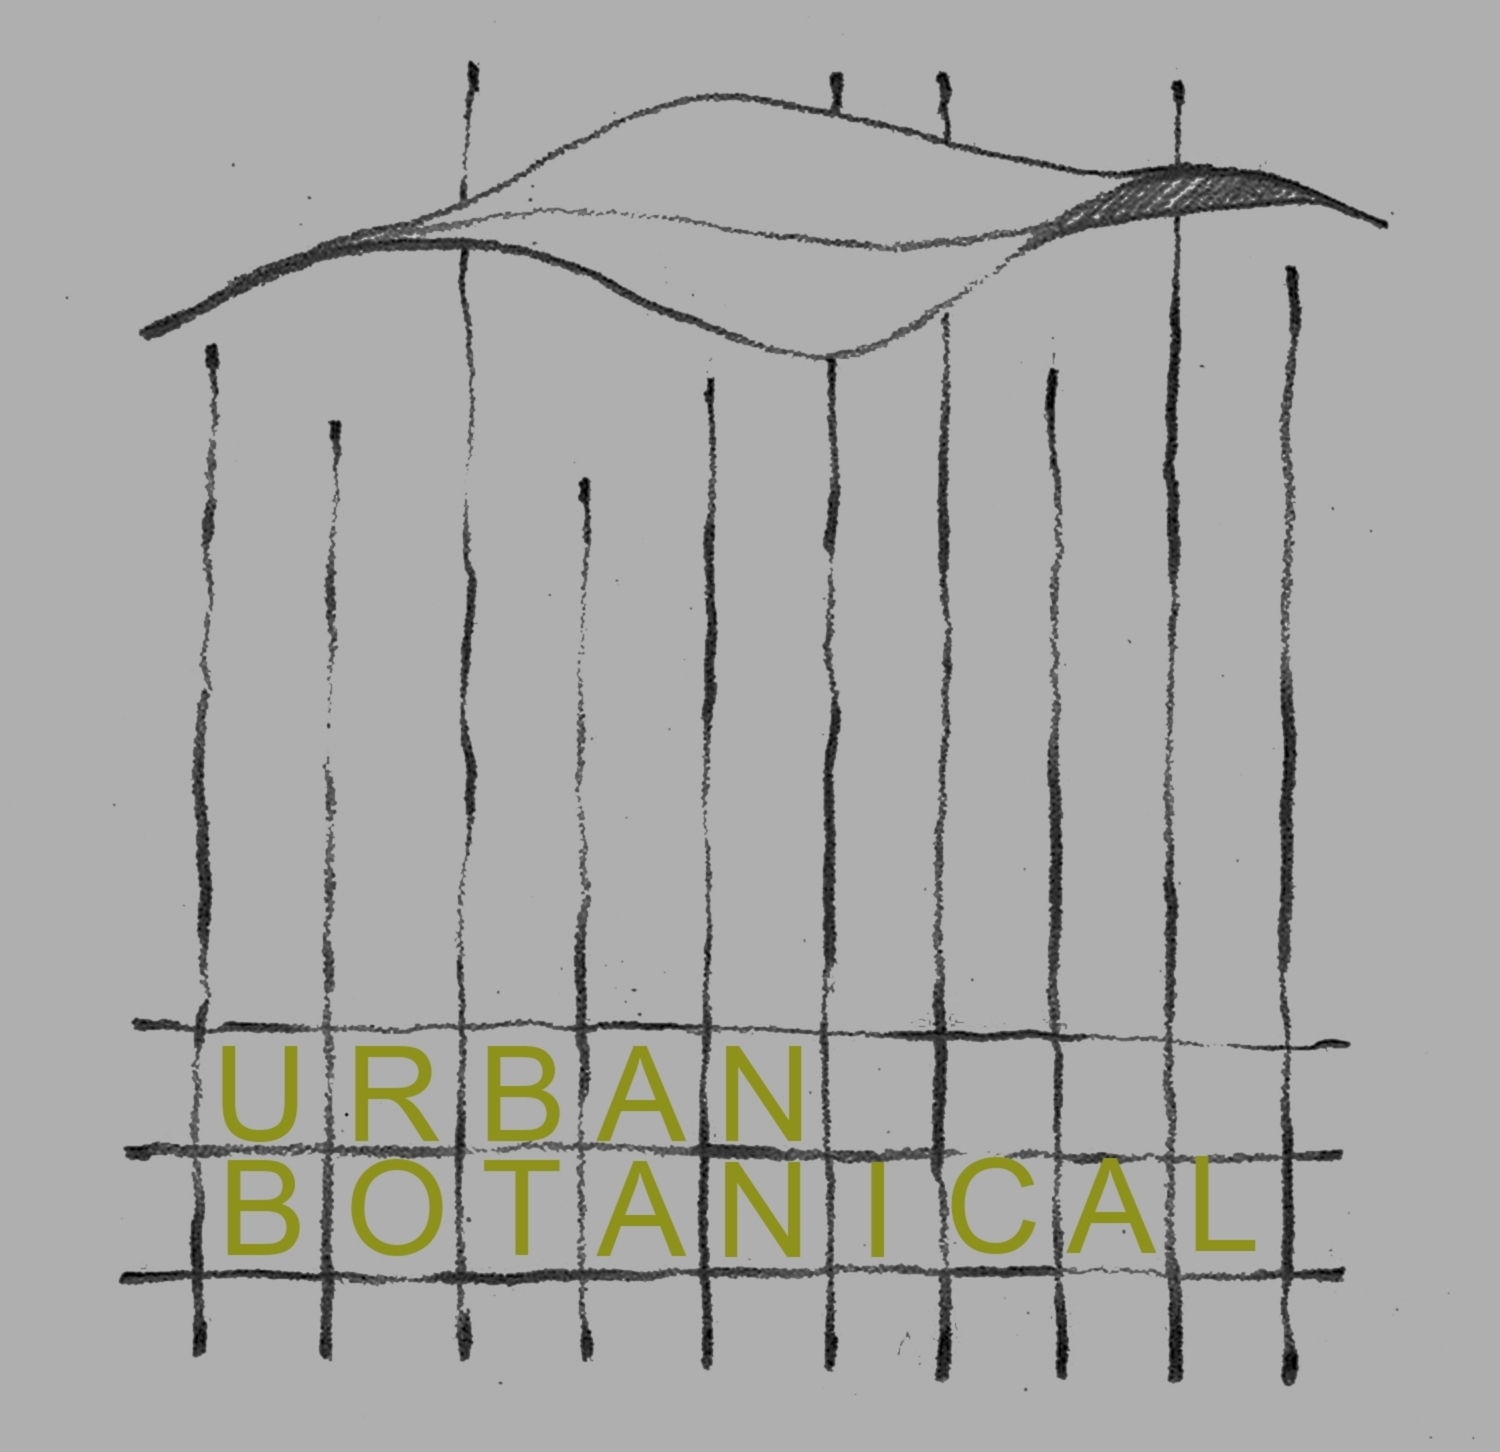 URBAN BOTANICAL